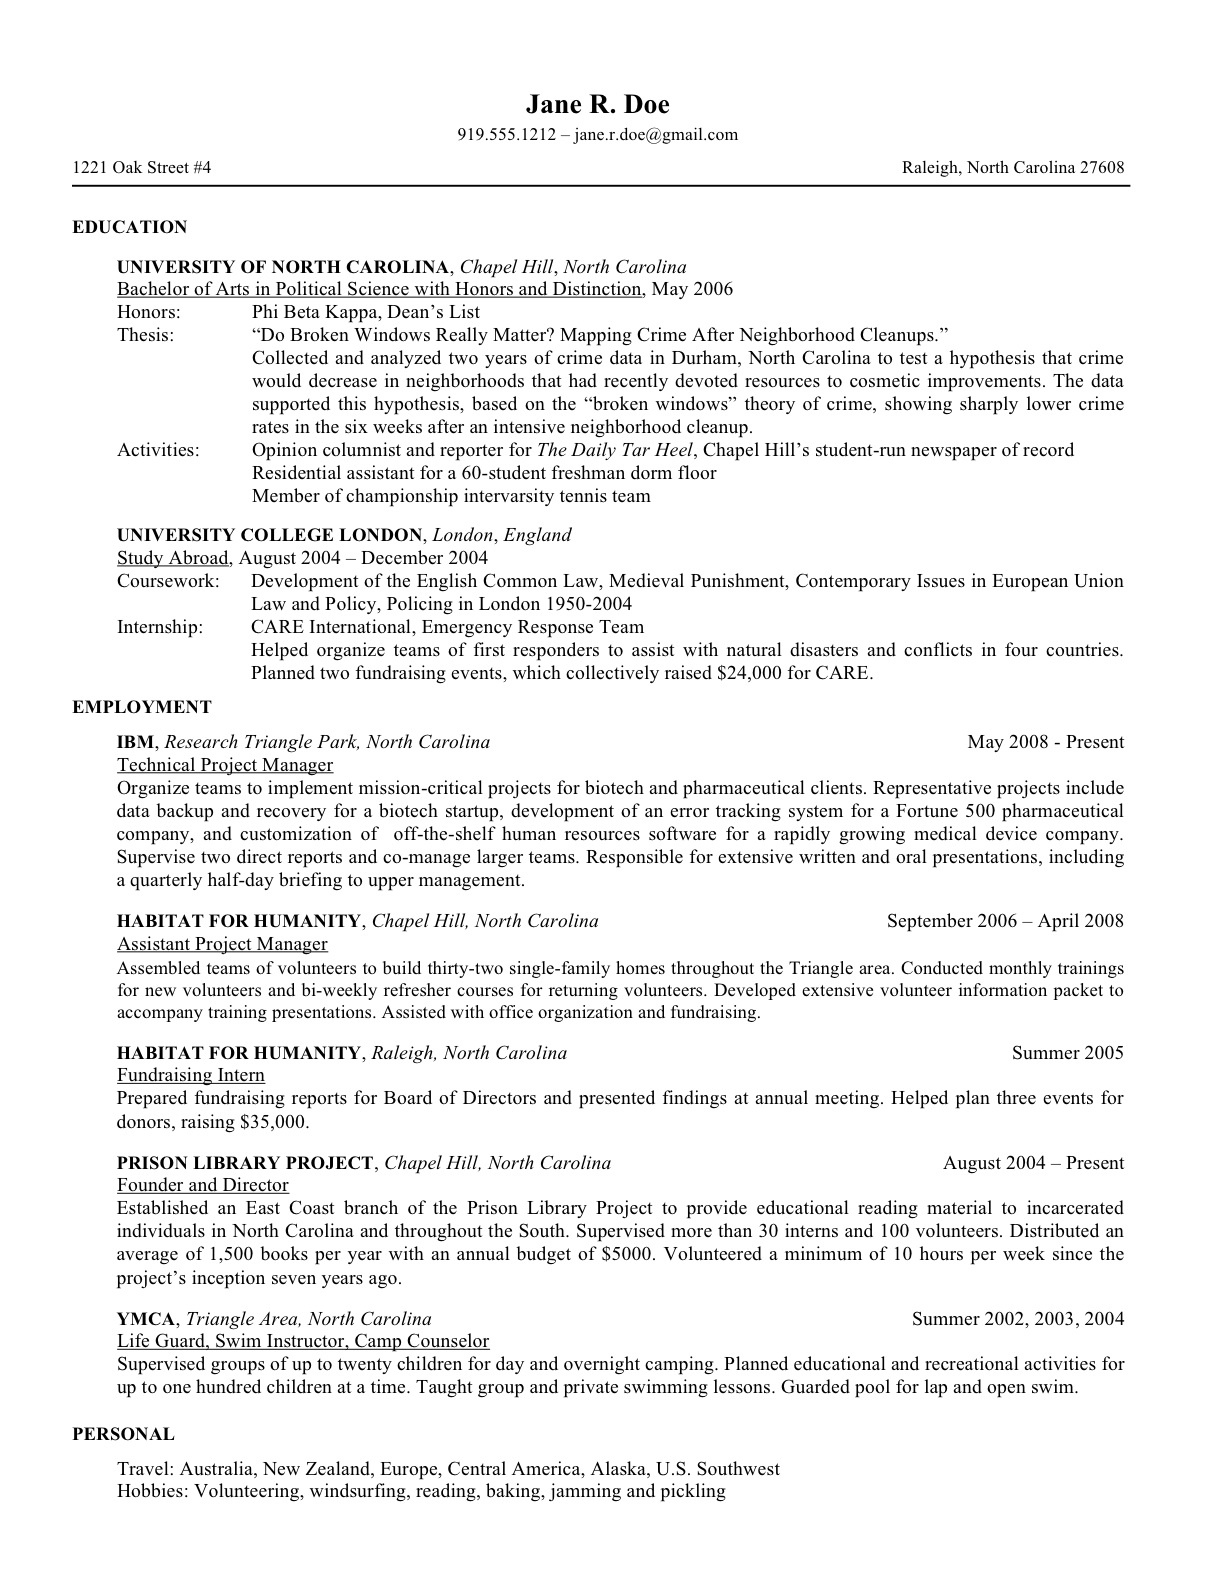 law school resume templates prepping your for of university at student good samples Resume Law School Student Resume